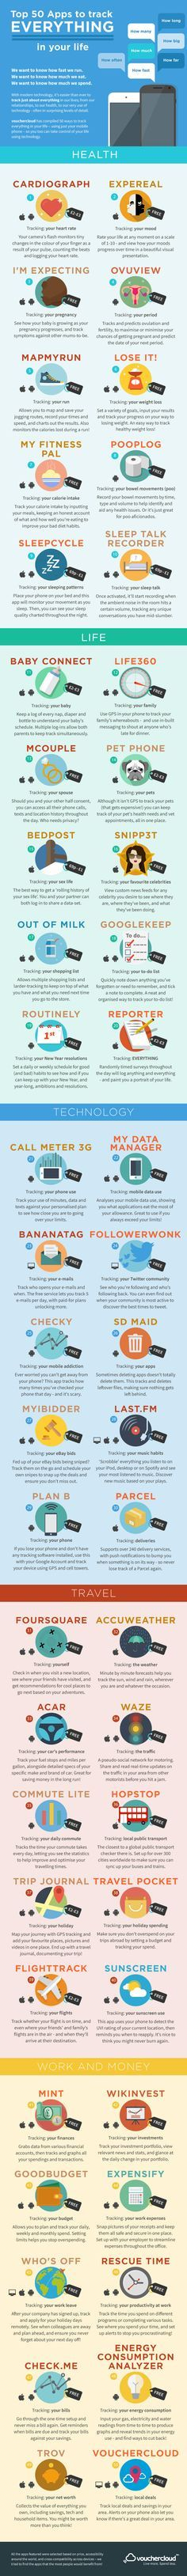 Top 50 Apps to Track Everything in Your Life #infographic #Apps #Life #Health #Technology #MobileApps